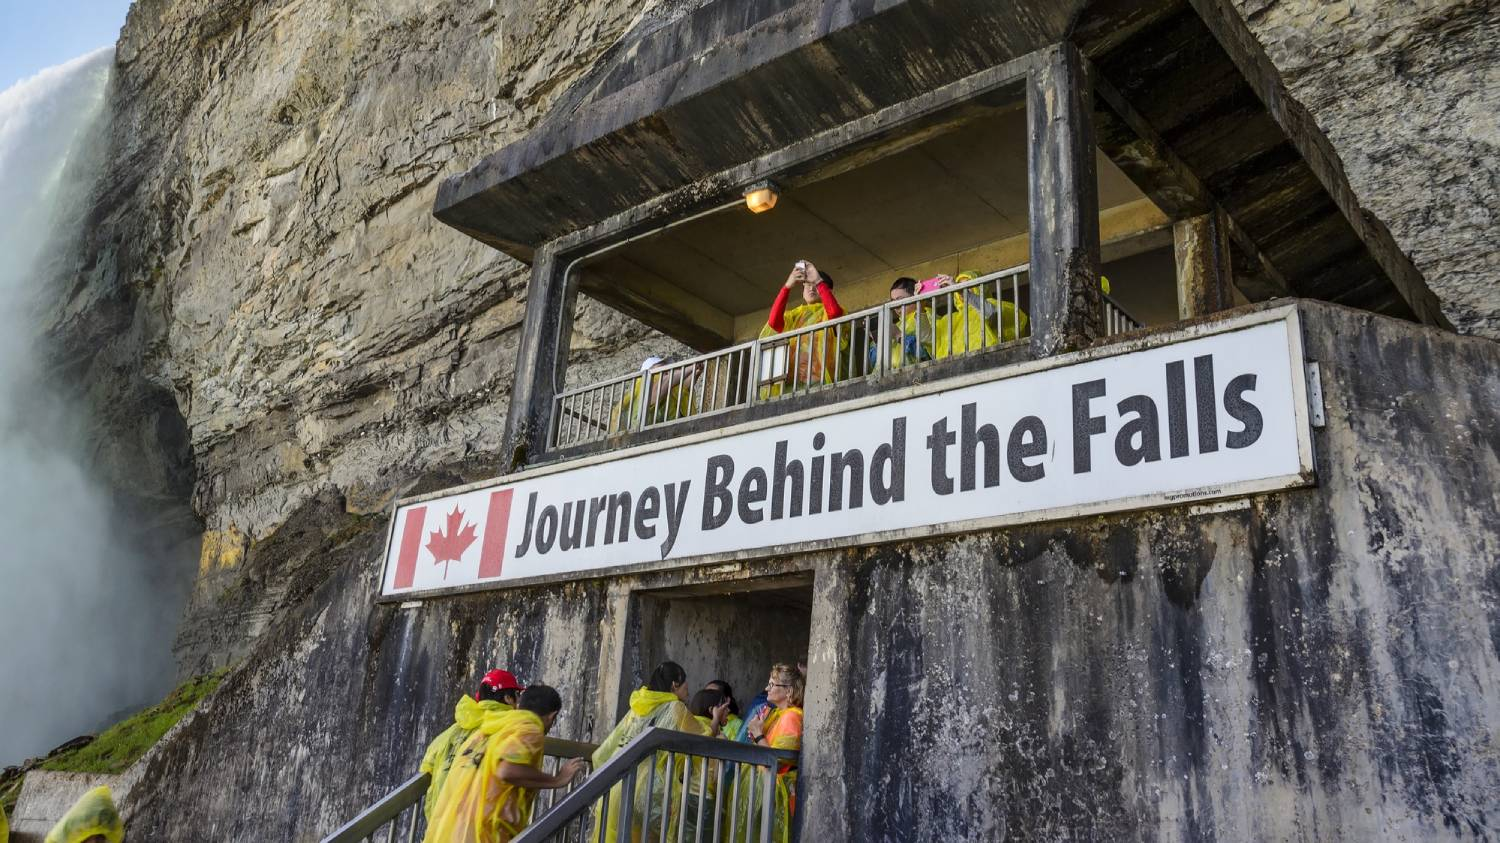 Journey Behind the Falls - Things To Do In Niagara Falls